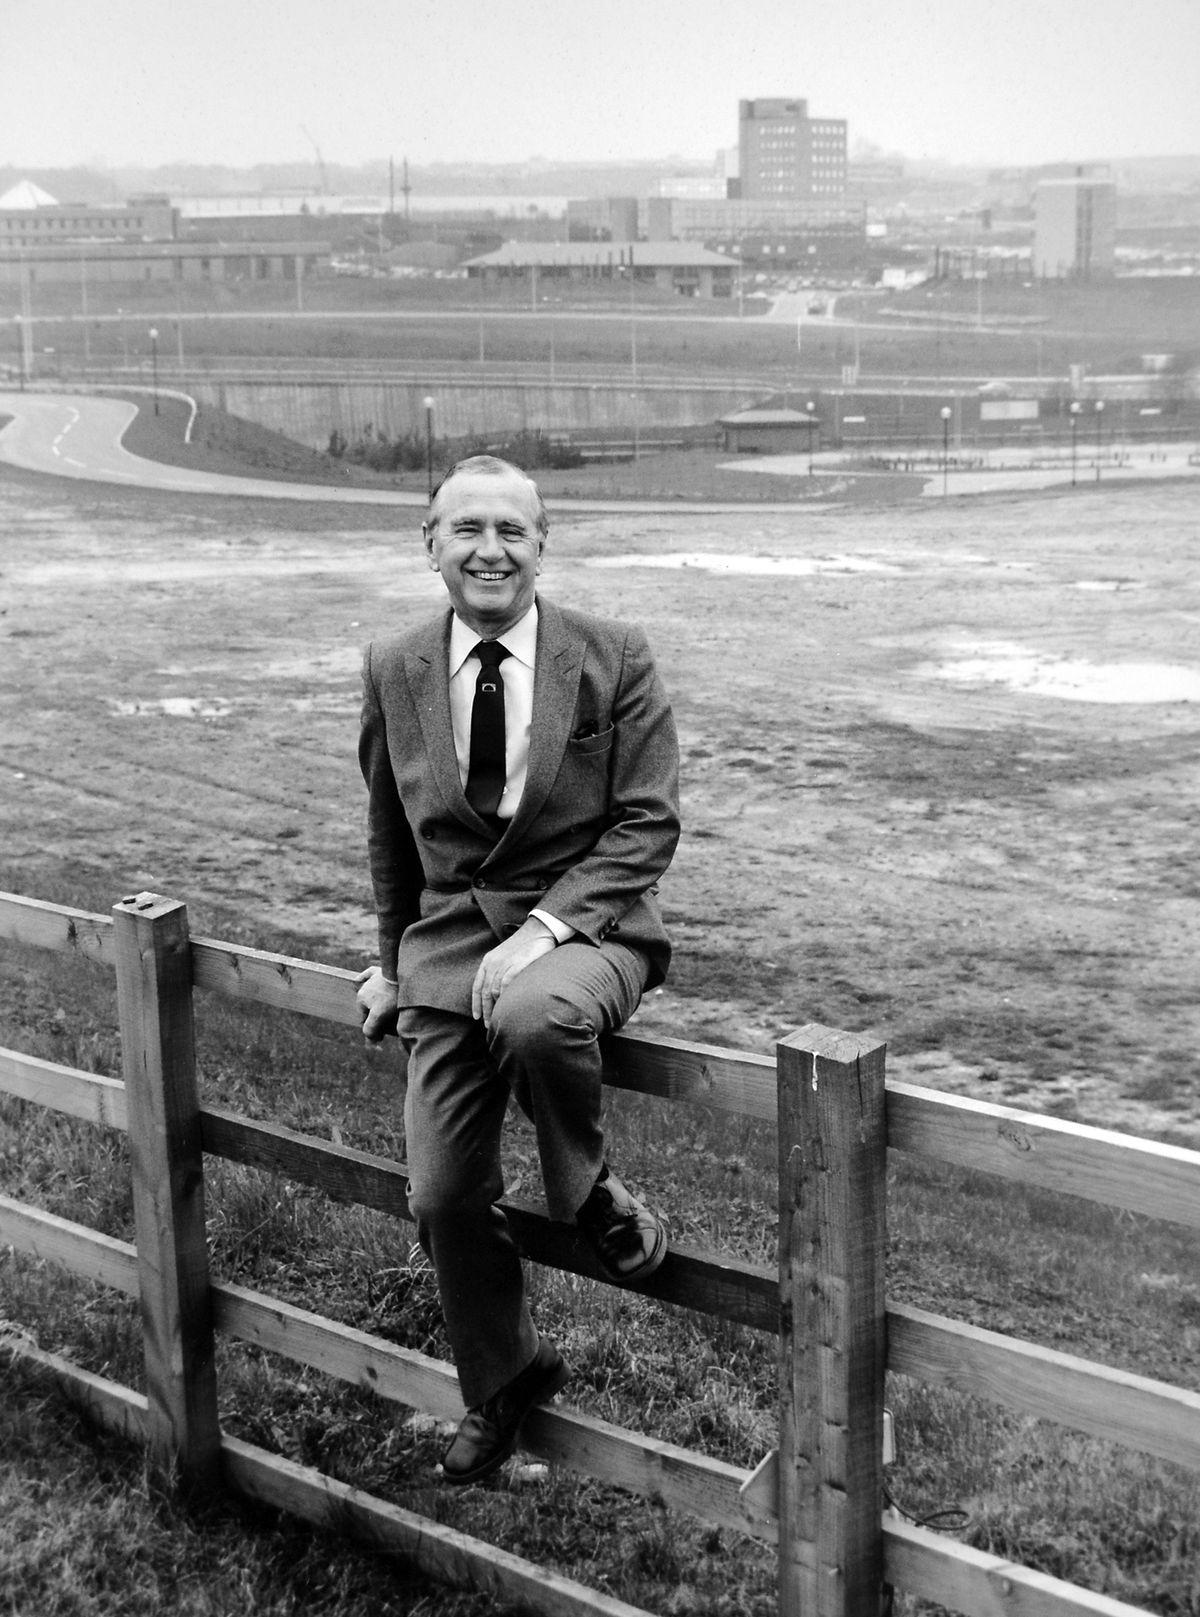 Lord Northfield, chairman of Telford Development Corporation – as Donald Chapman, he was Labour MP for Birmingham (Northfield) from 1951 to 1970.